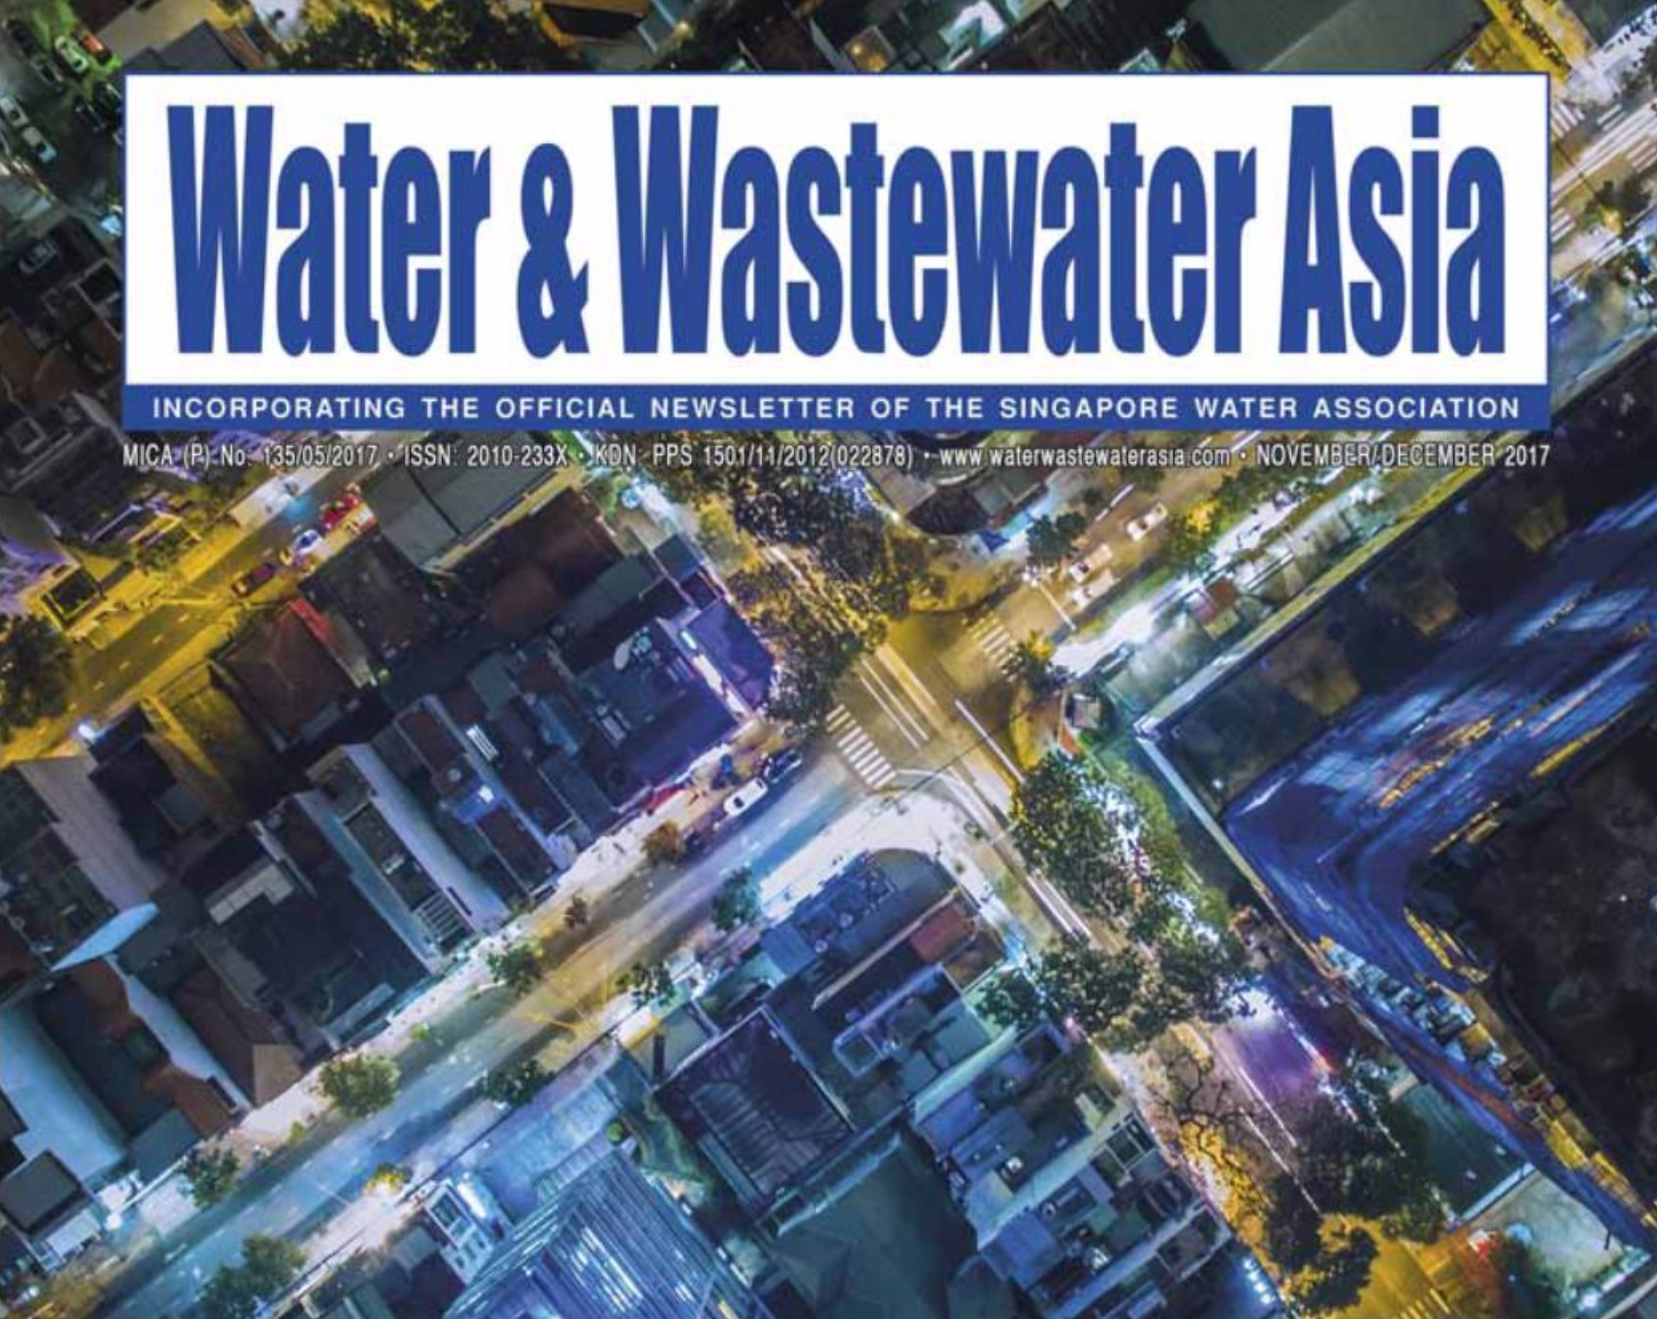 Water & Wastewater Asia features Drylet in Nov/Dec issue